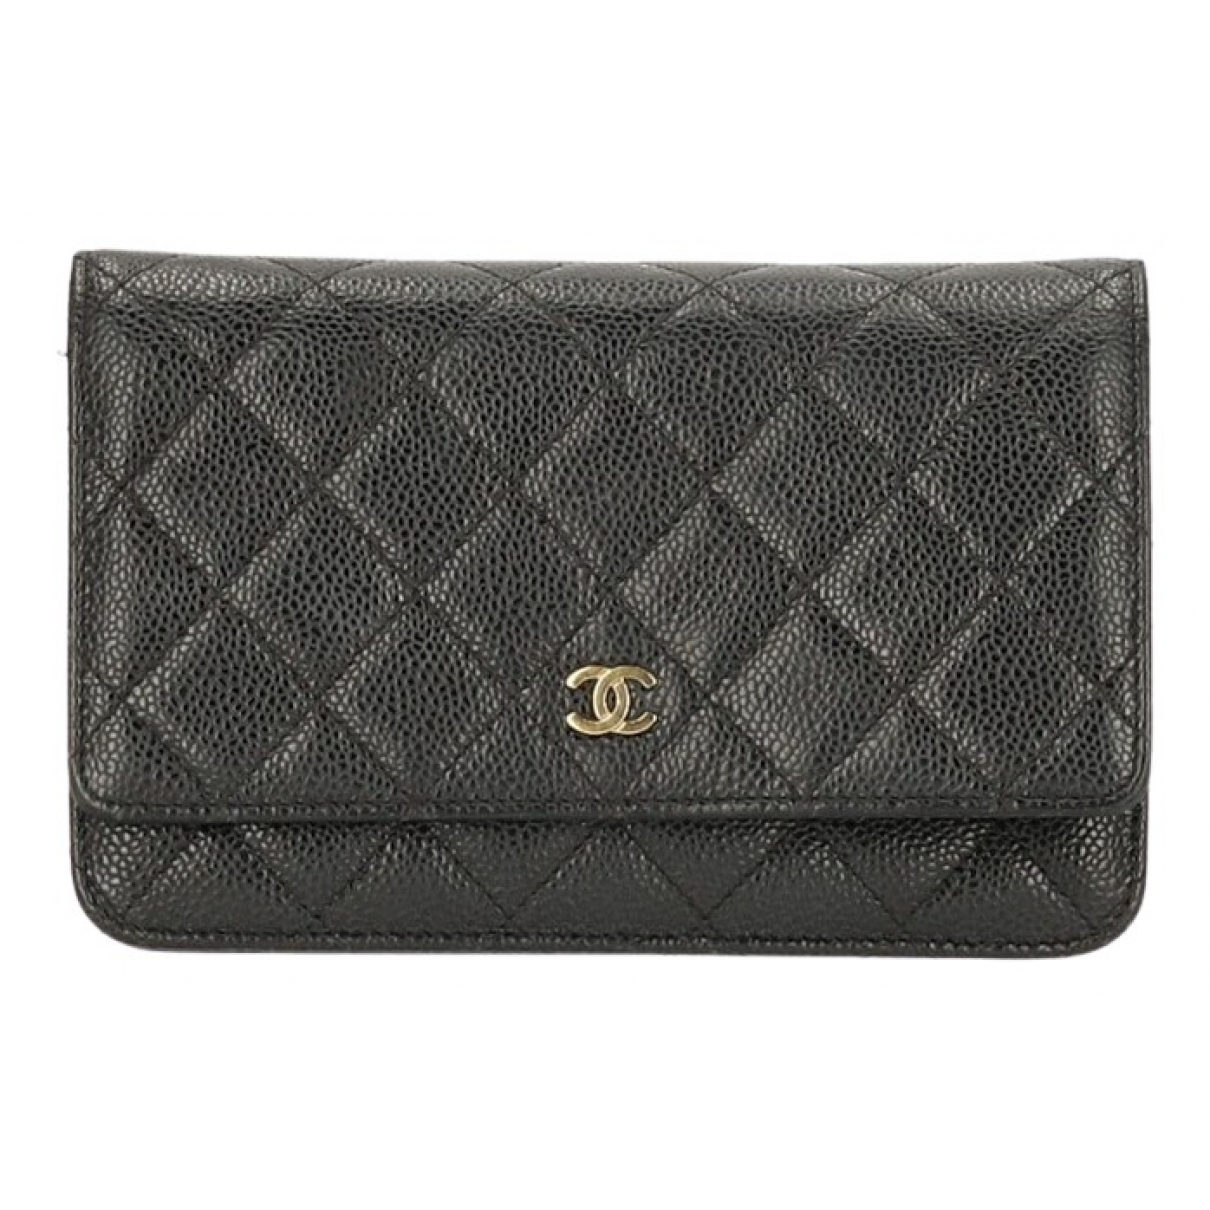 Chanel Wallet on Chain Handtasche in  Schwarz Leder